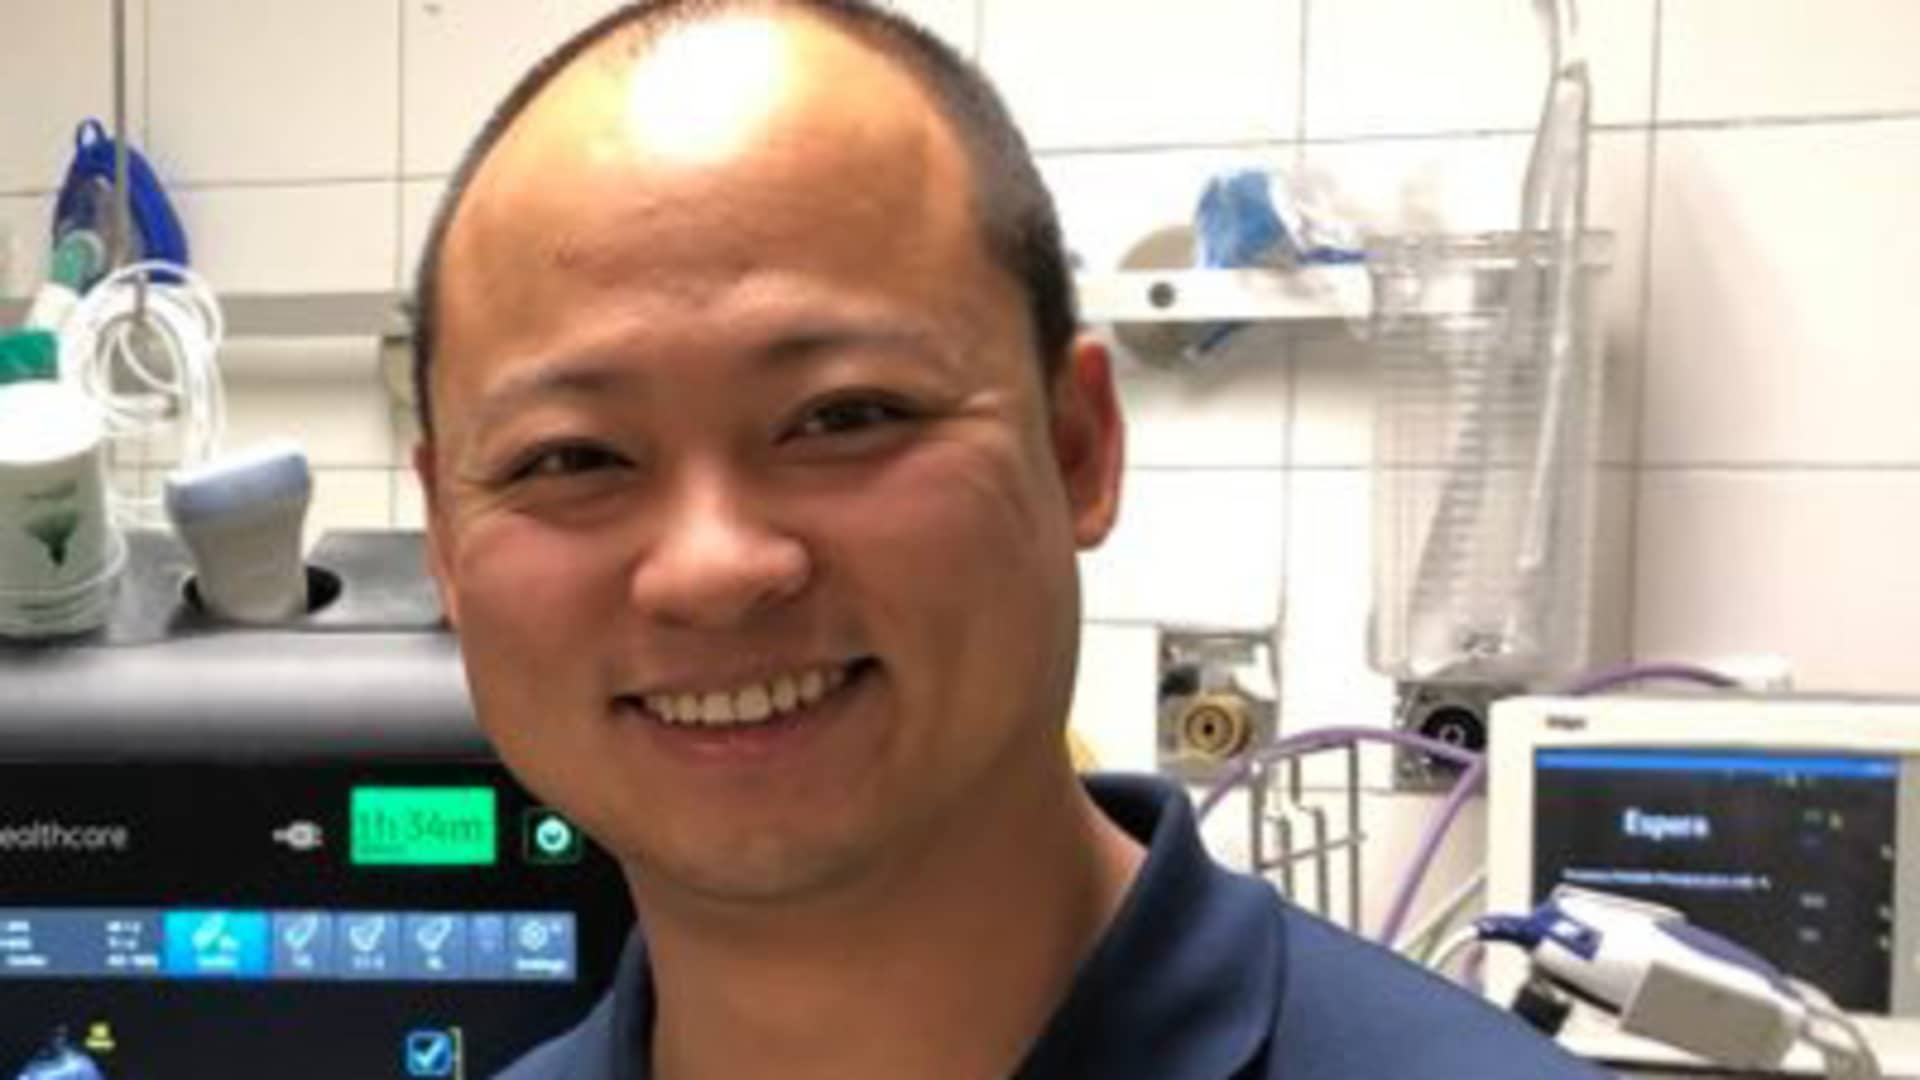 Dr. Yale Tung-Chen, chief of the Division of Ultrasound in Internal Medicine at Hospital Universitario Puerta de Hierro, Majadahonda in Madrid, Spain, who was a clinical evaluator of Vscan Air. He's currently working in the Spanish Covid-19 specialized Isabel Zendal Emergency Hospi